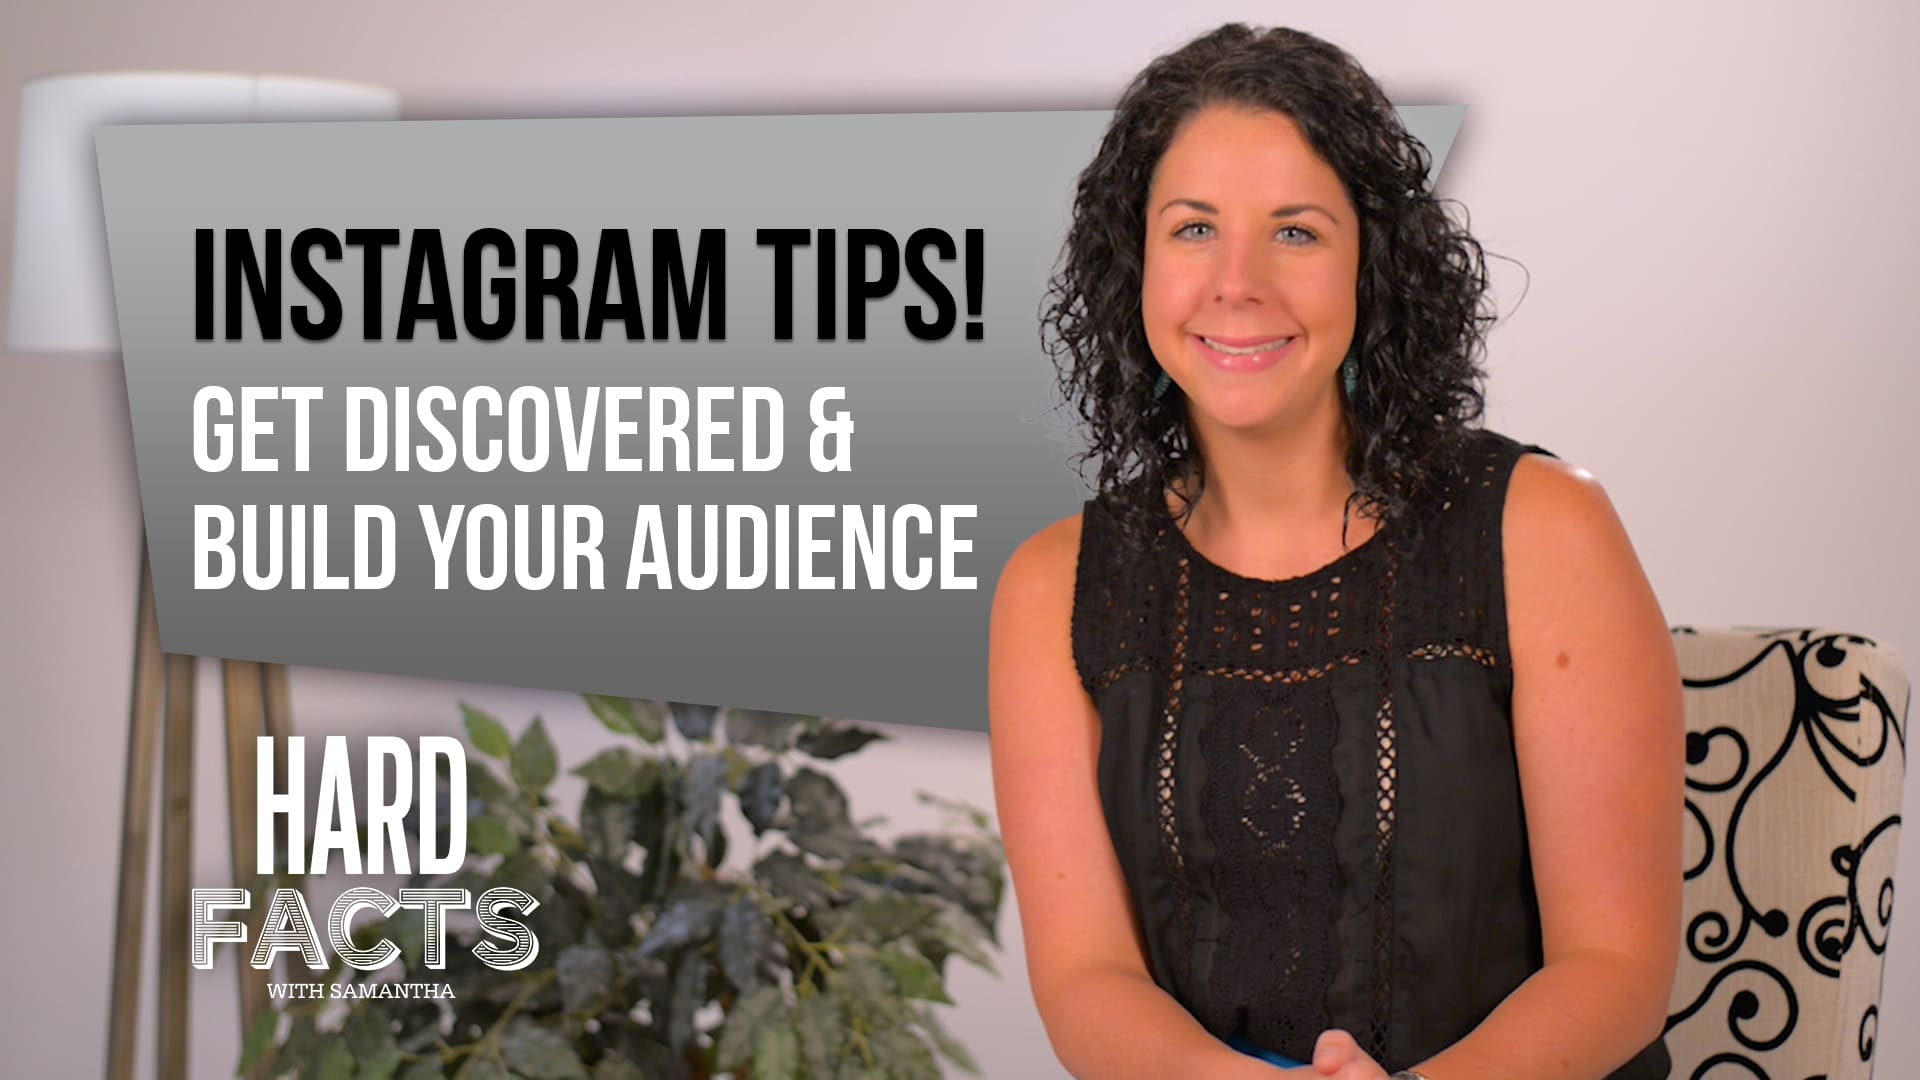 Instagram Tips! Get Discovered & Build Your Audience